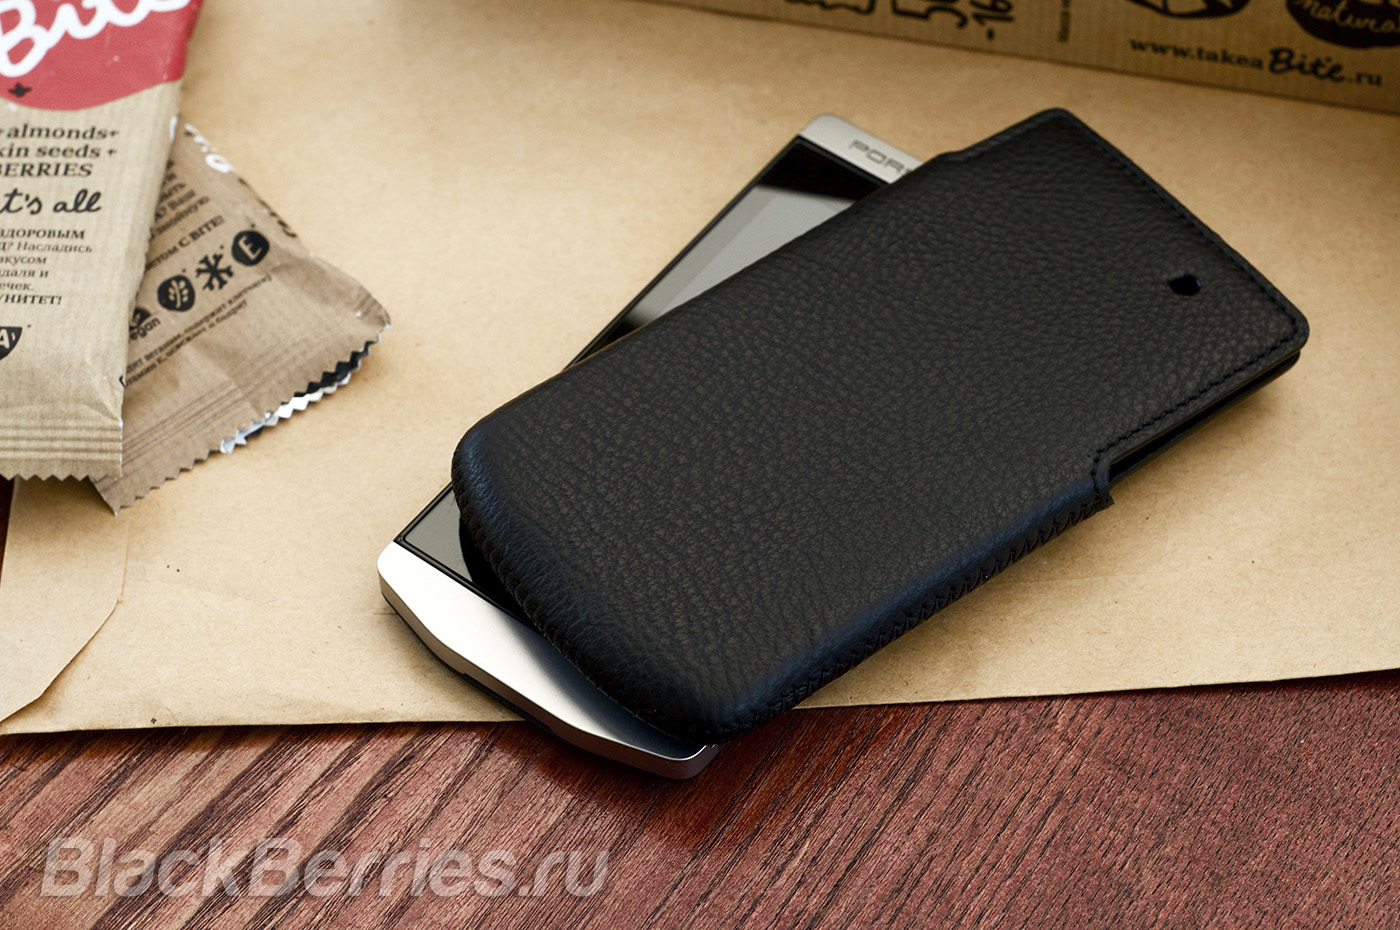 BlackBerry-P9982-Case-02